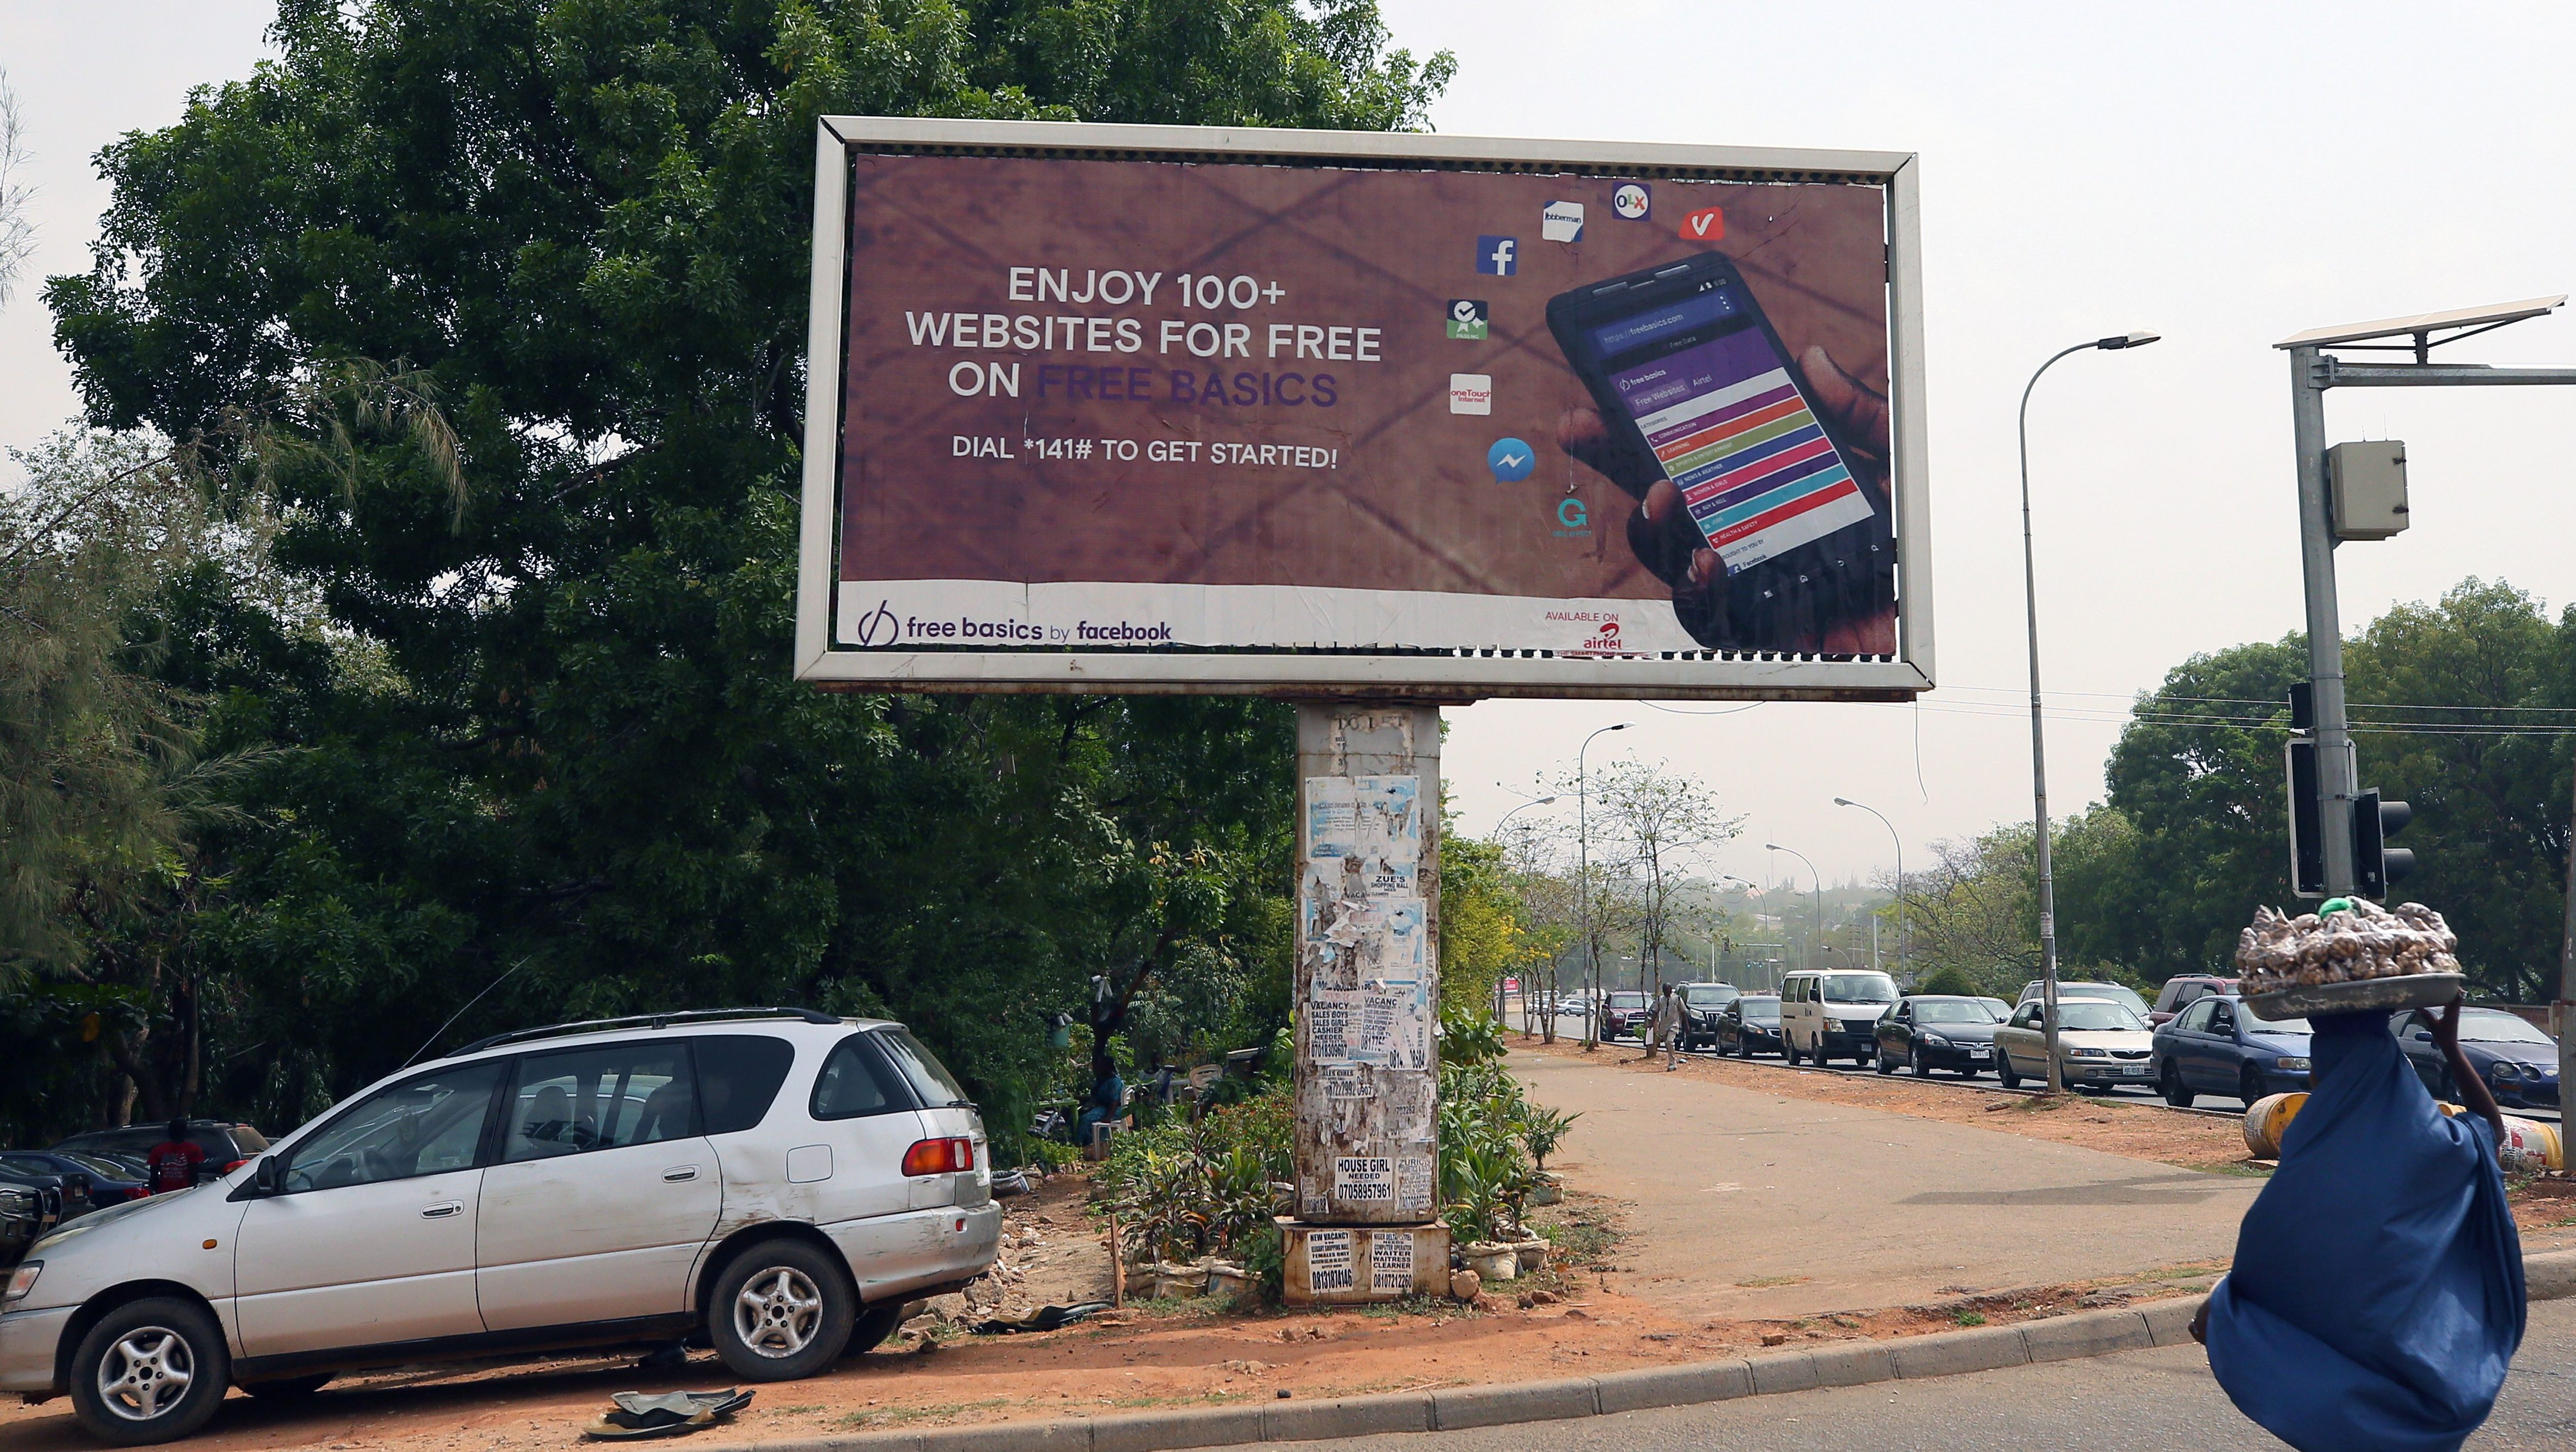 A woman walks past an advertising billboard for Free Basics, a service from Facebook, along a street in Abuja, Nigeria April 4, 2018.